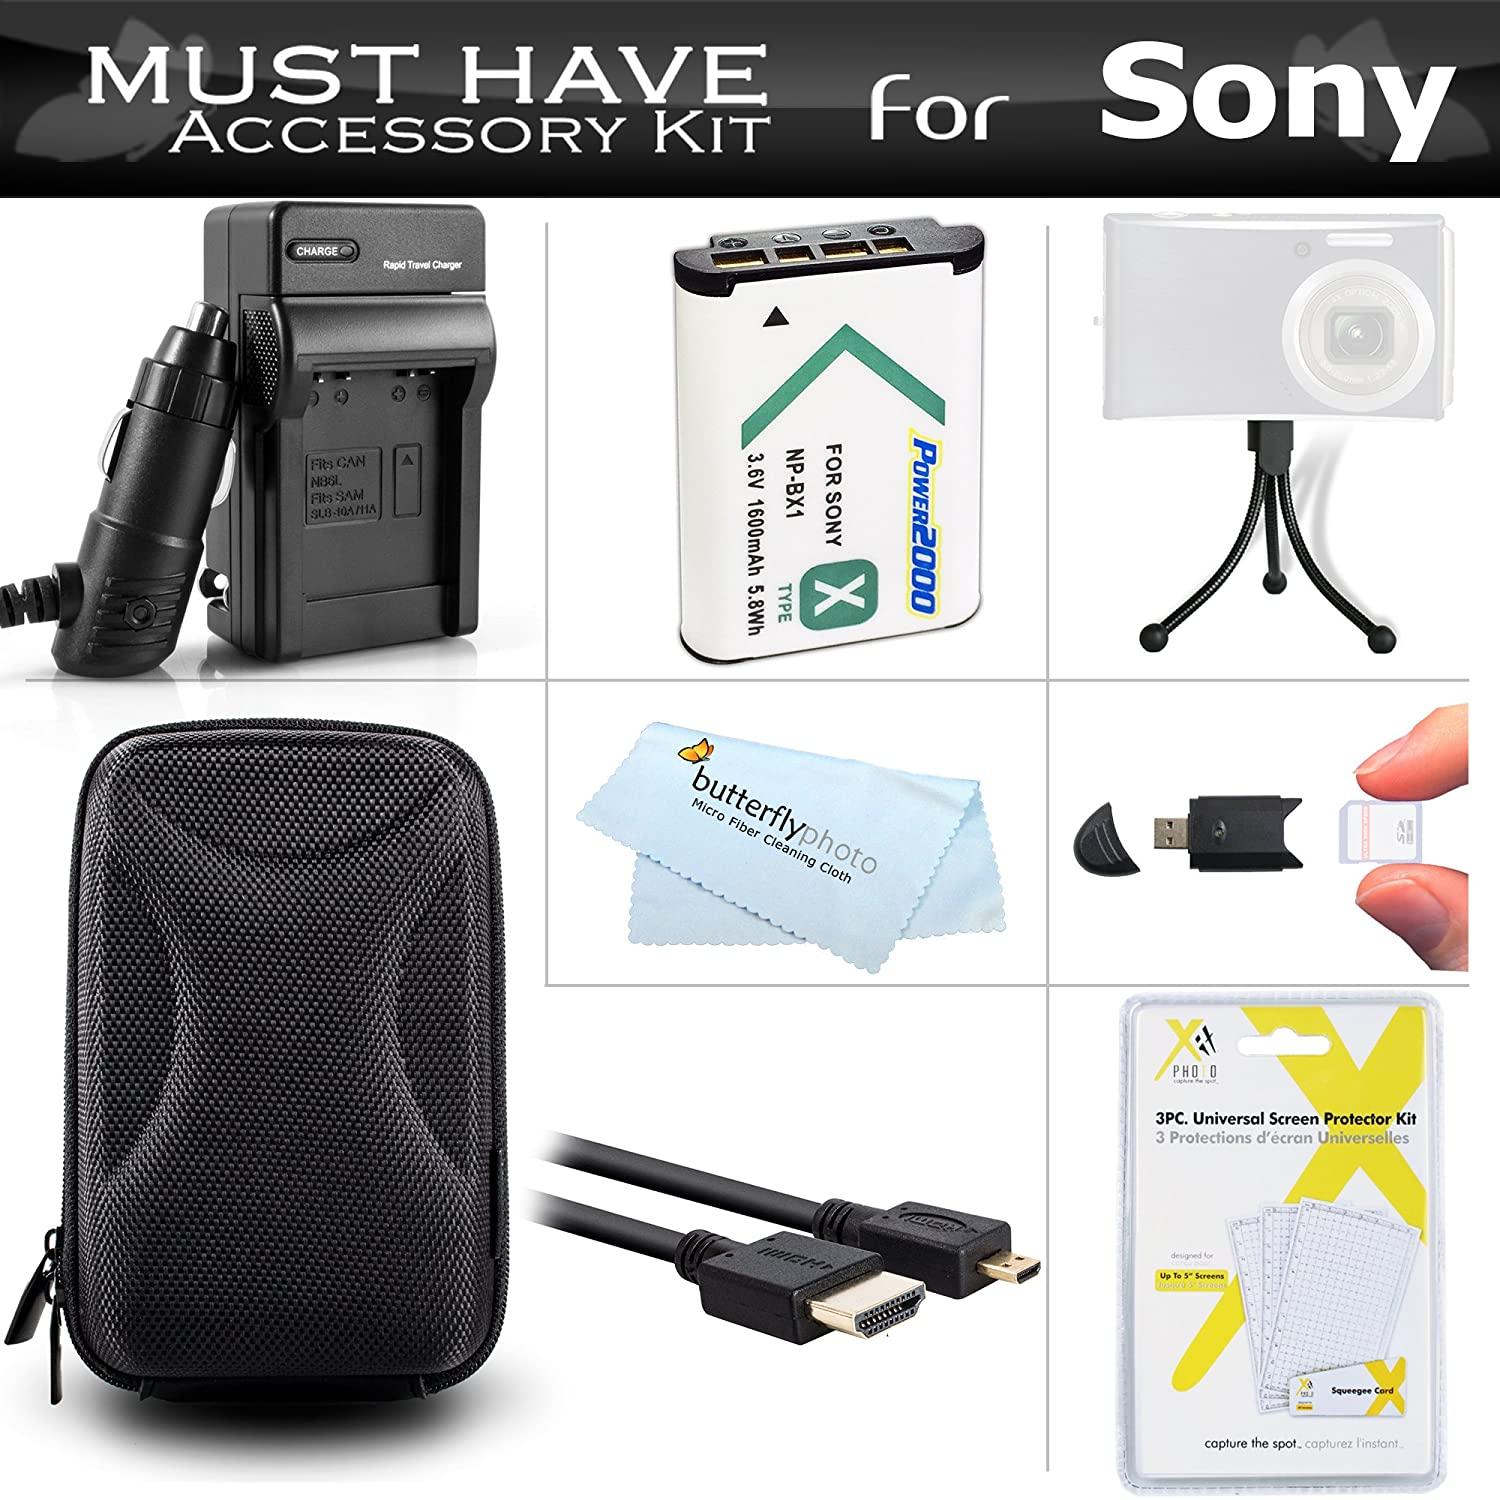 eab12fff Must Have Accessory Bundle Kit For Sony DSC-RX100 V, DSC-RX100M III,  DSC-RX100 IV, DSC-WX350, DSC-HX50V/B, DSCHX80/B, DSCHX90V/B, DSCWX500/B  Digital Camera ...